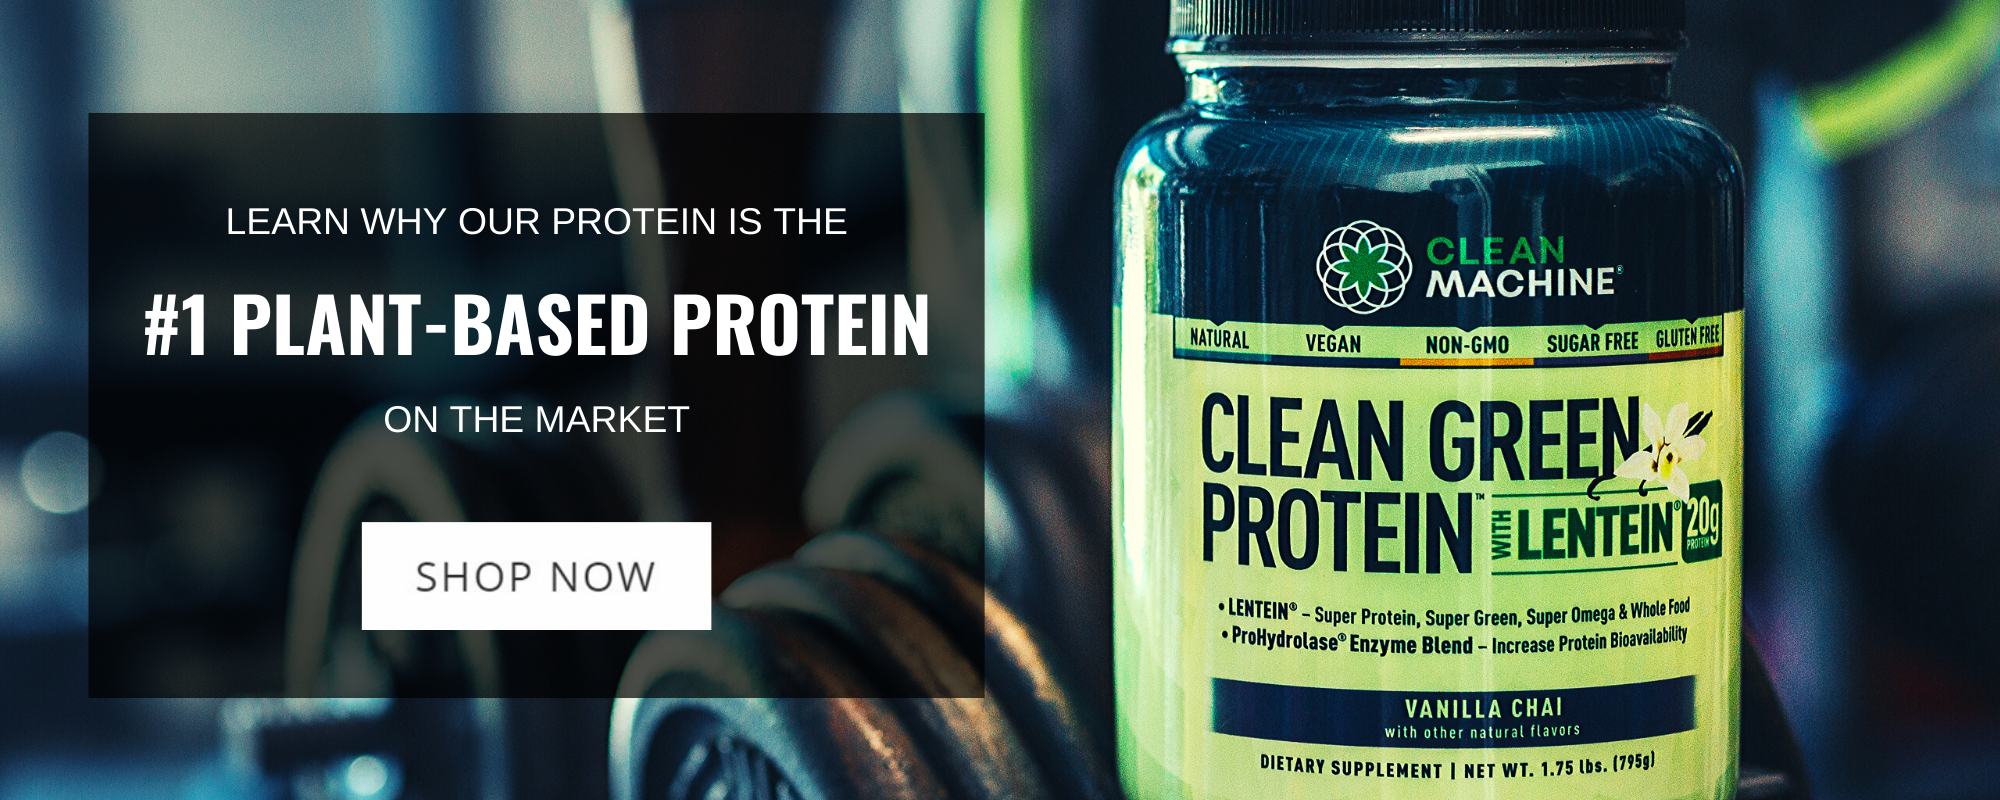 Clean Machine - Clean Green Protein